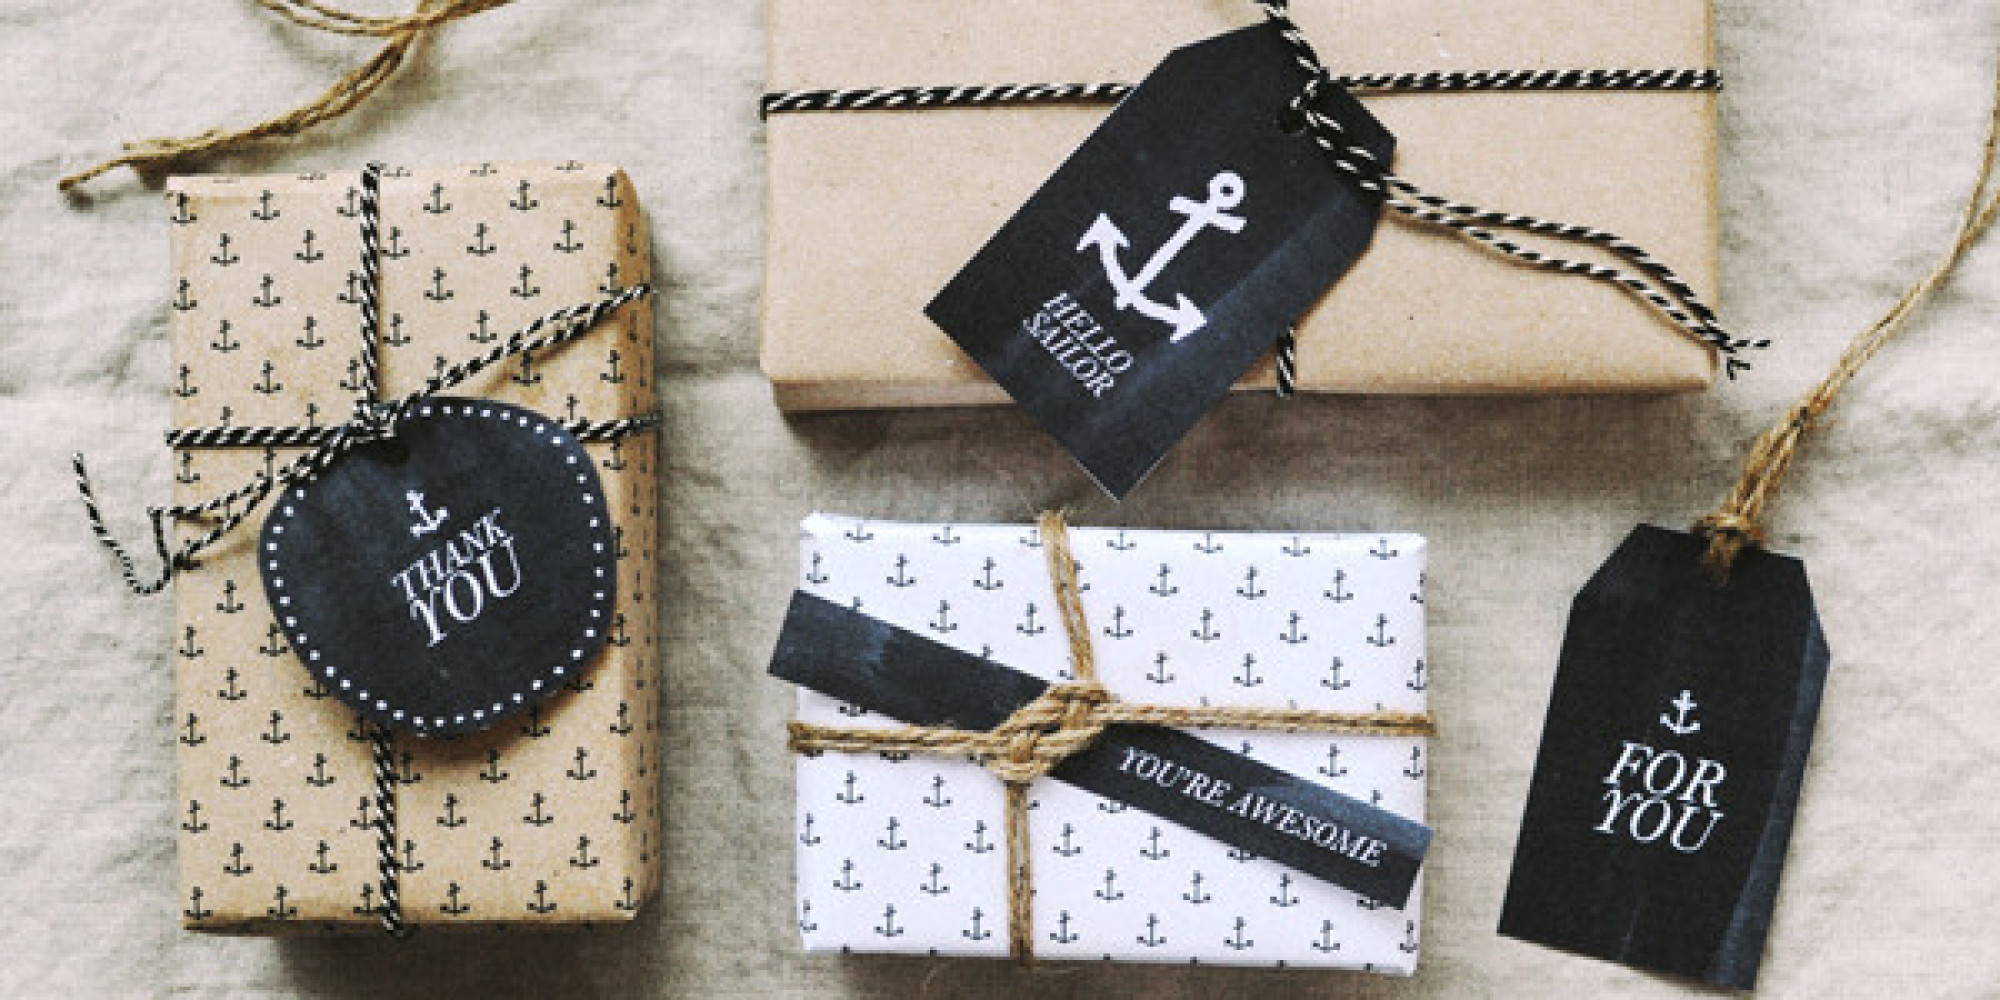 Best ideas about Gift Wrapping Ideas For Him . Save or Pin 10 Creative Gift Wrap Ideas That Look More plicated Now.